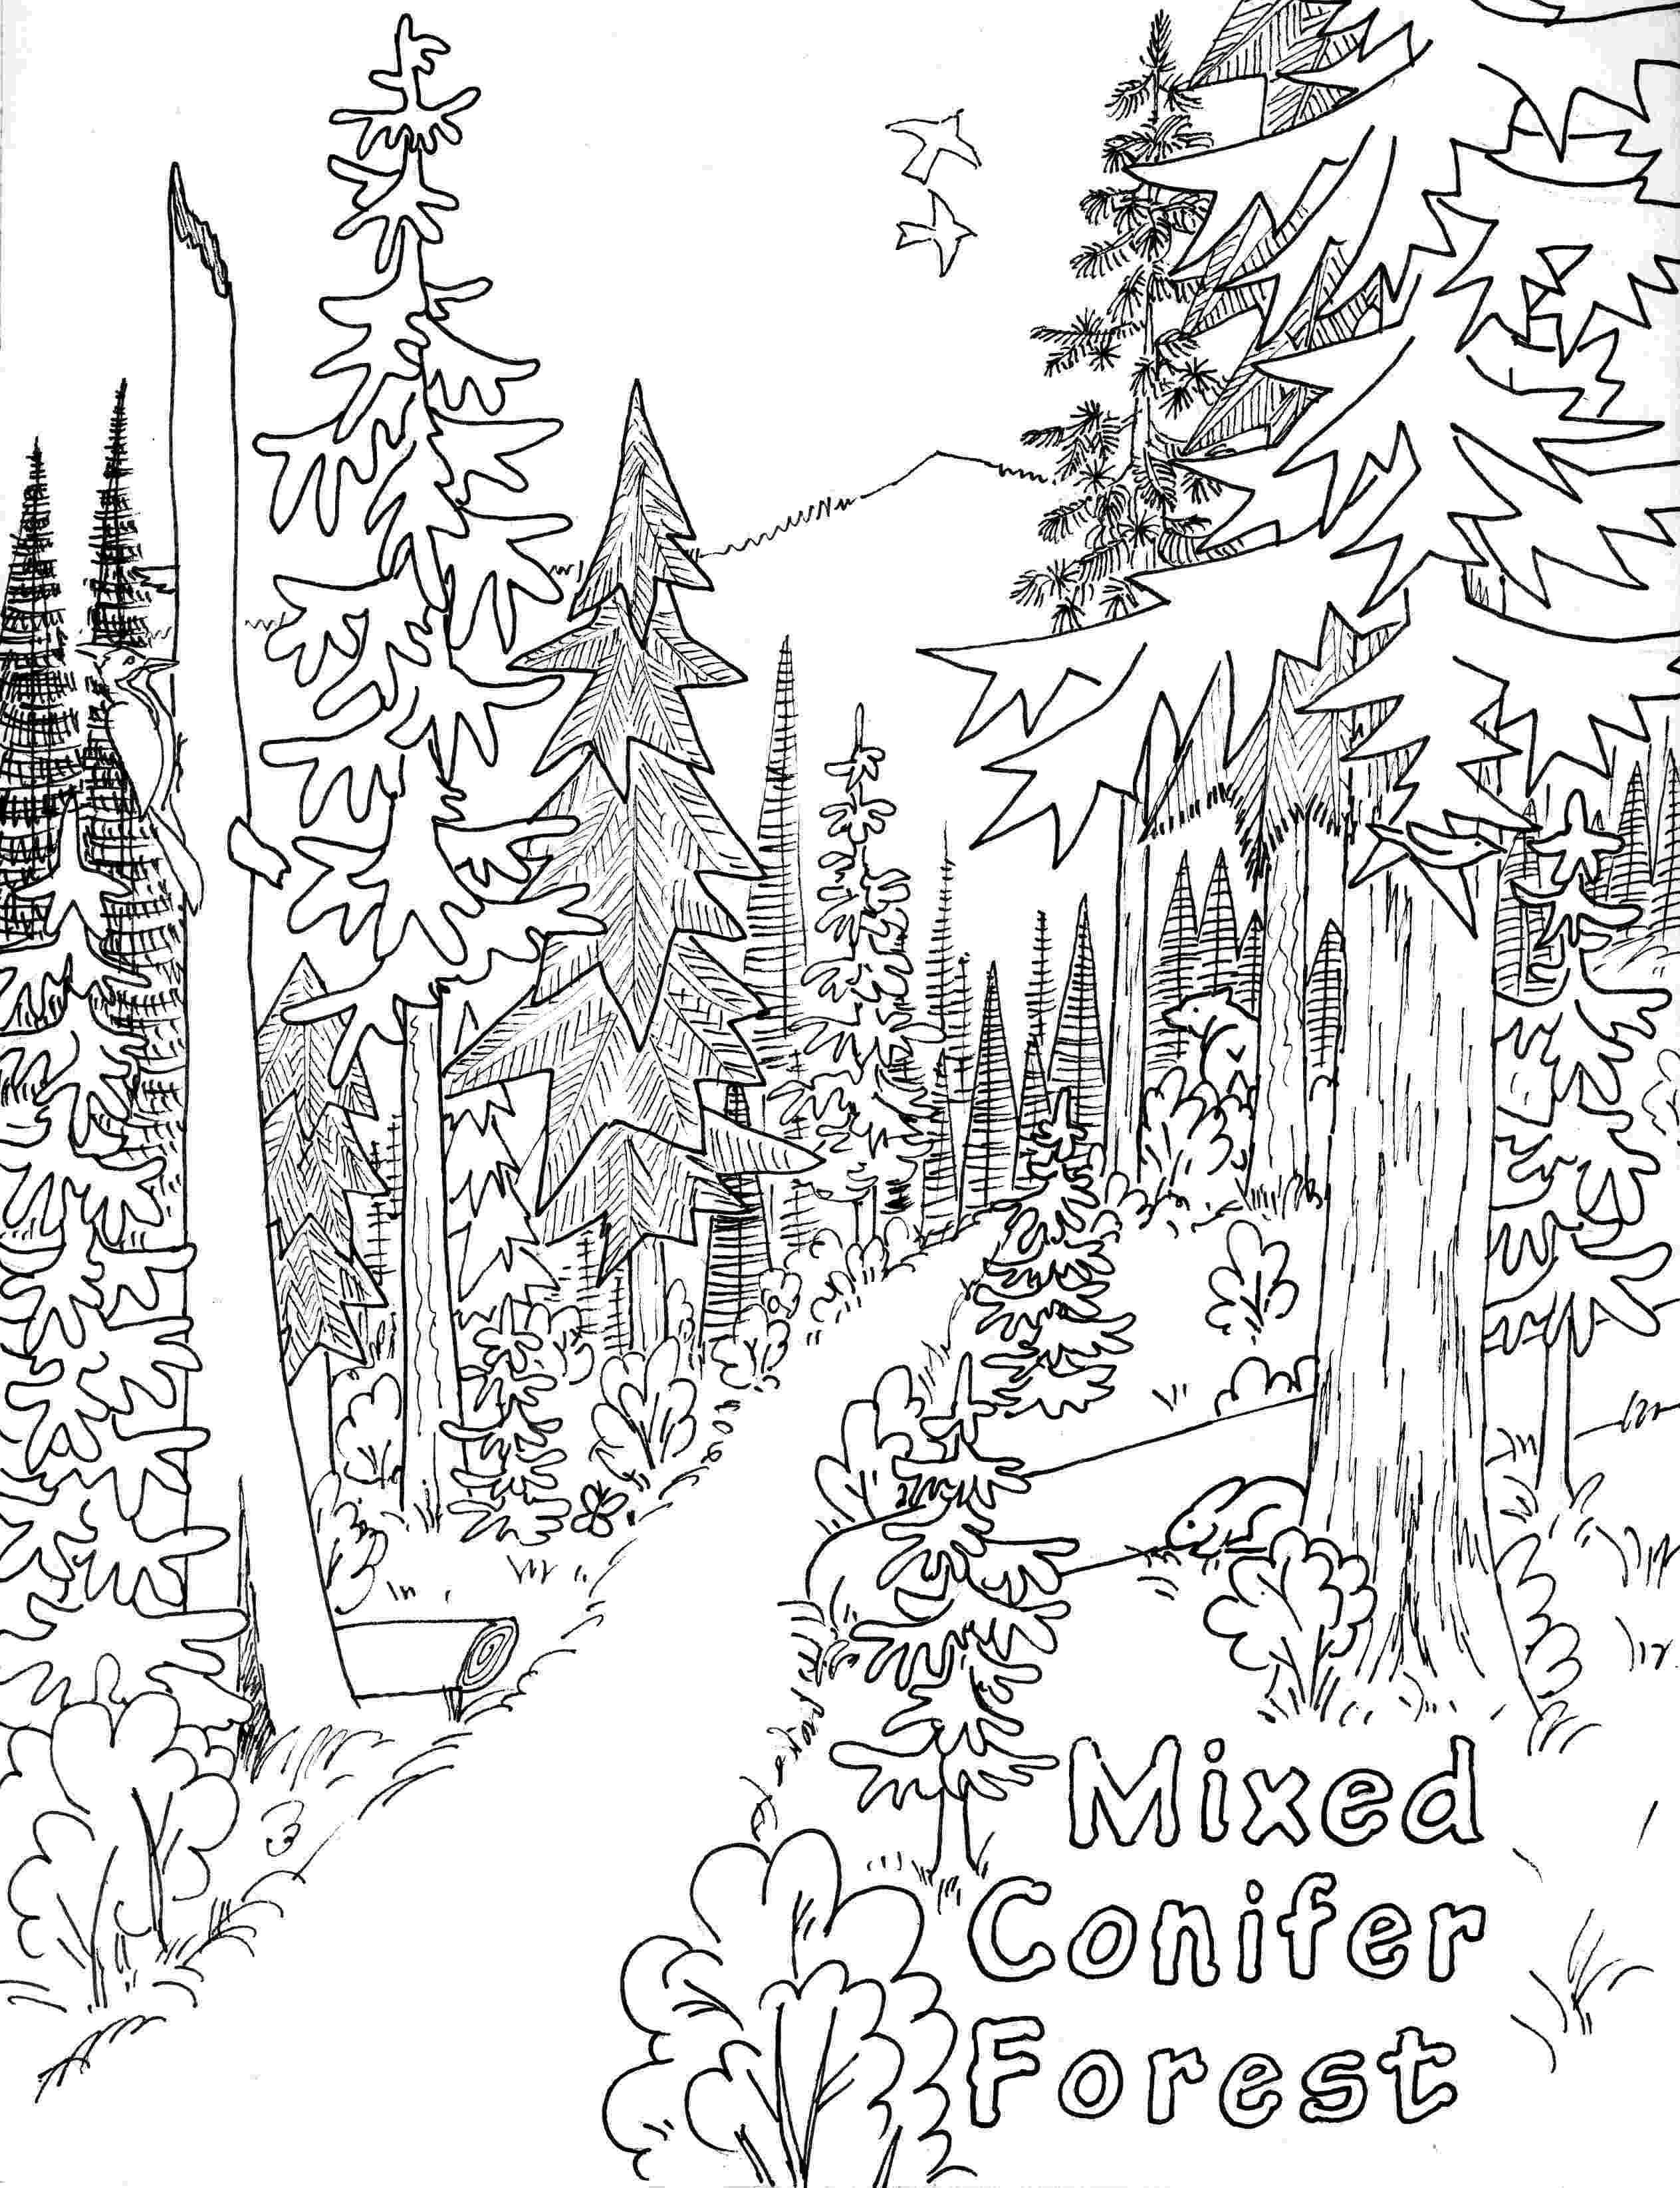 nature coloring pages for adults nature alive forest hd coloring pages for adult for pages nature adults coloring